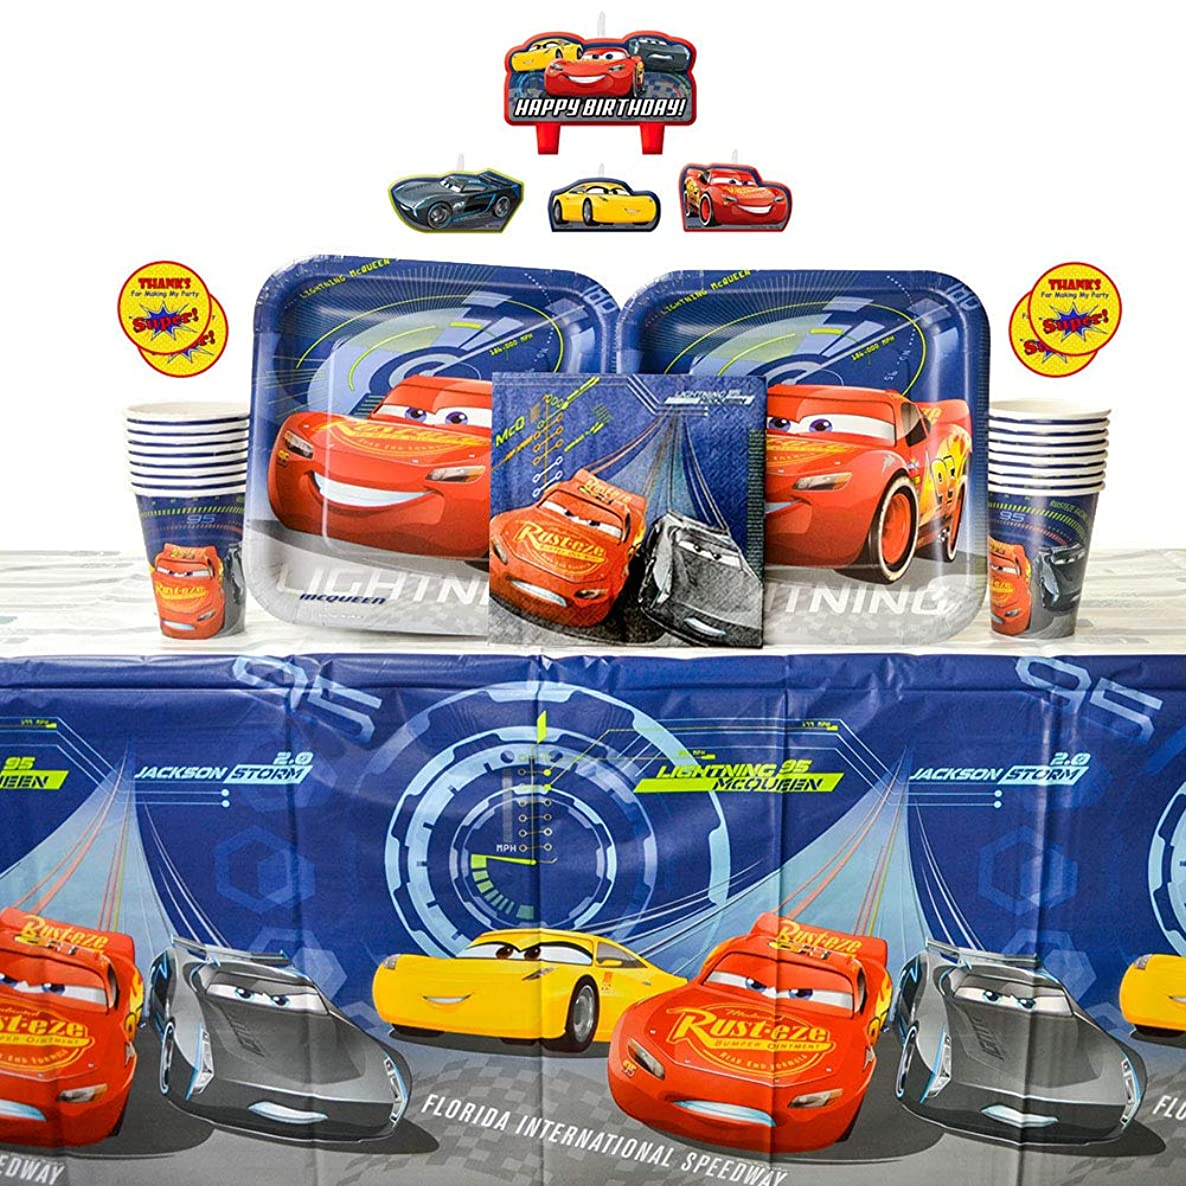 Cars 3 Party Supplies Pack for 16 Guests - Stickers, Candles, Dinner Plates, Luncheon Napkins, Cups, and Table Cover